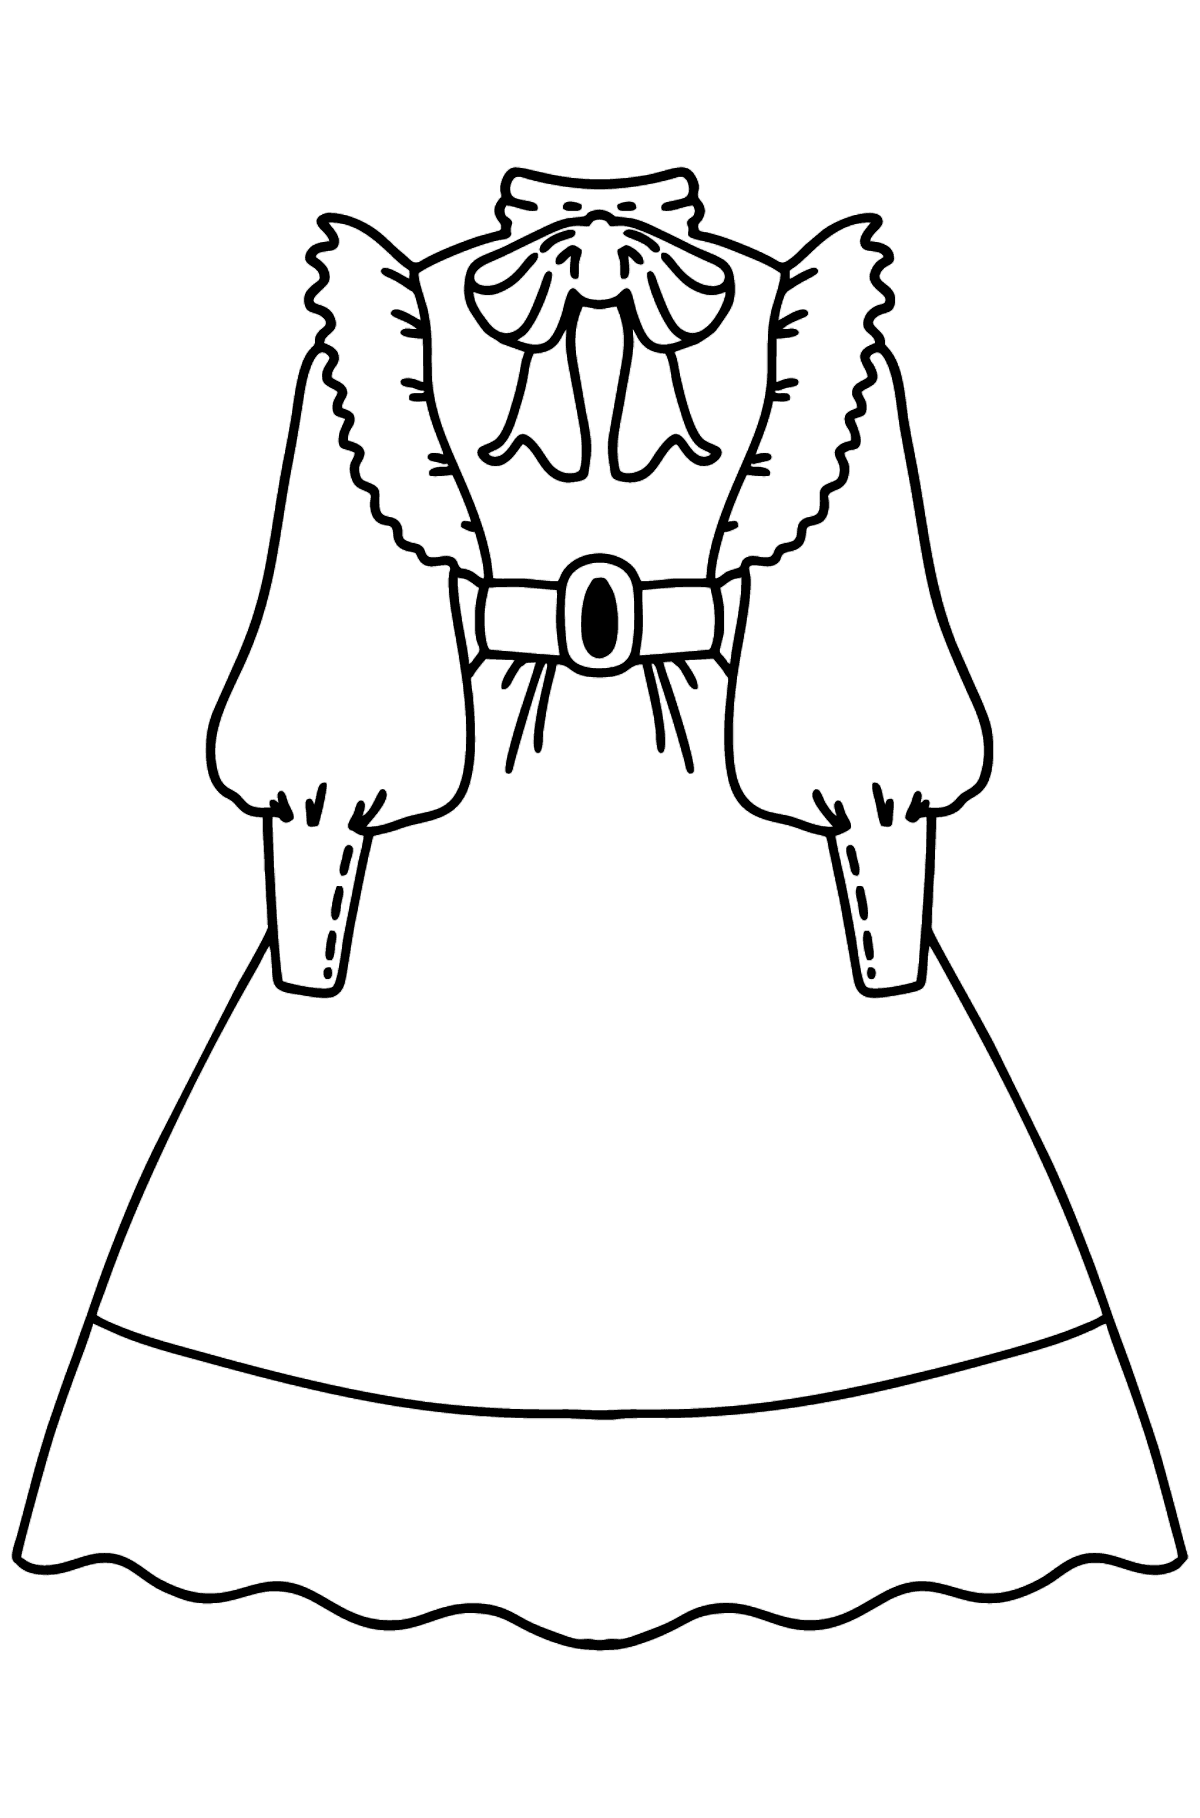 Dress coloring page - Coloring Pages for Kids